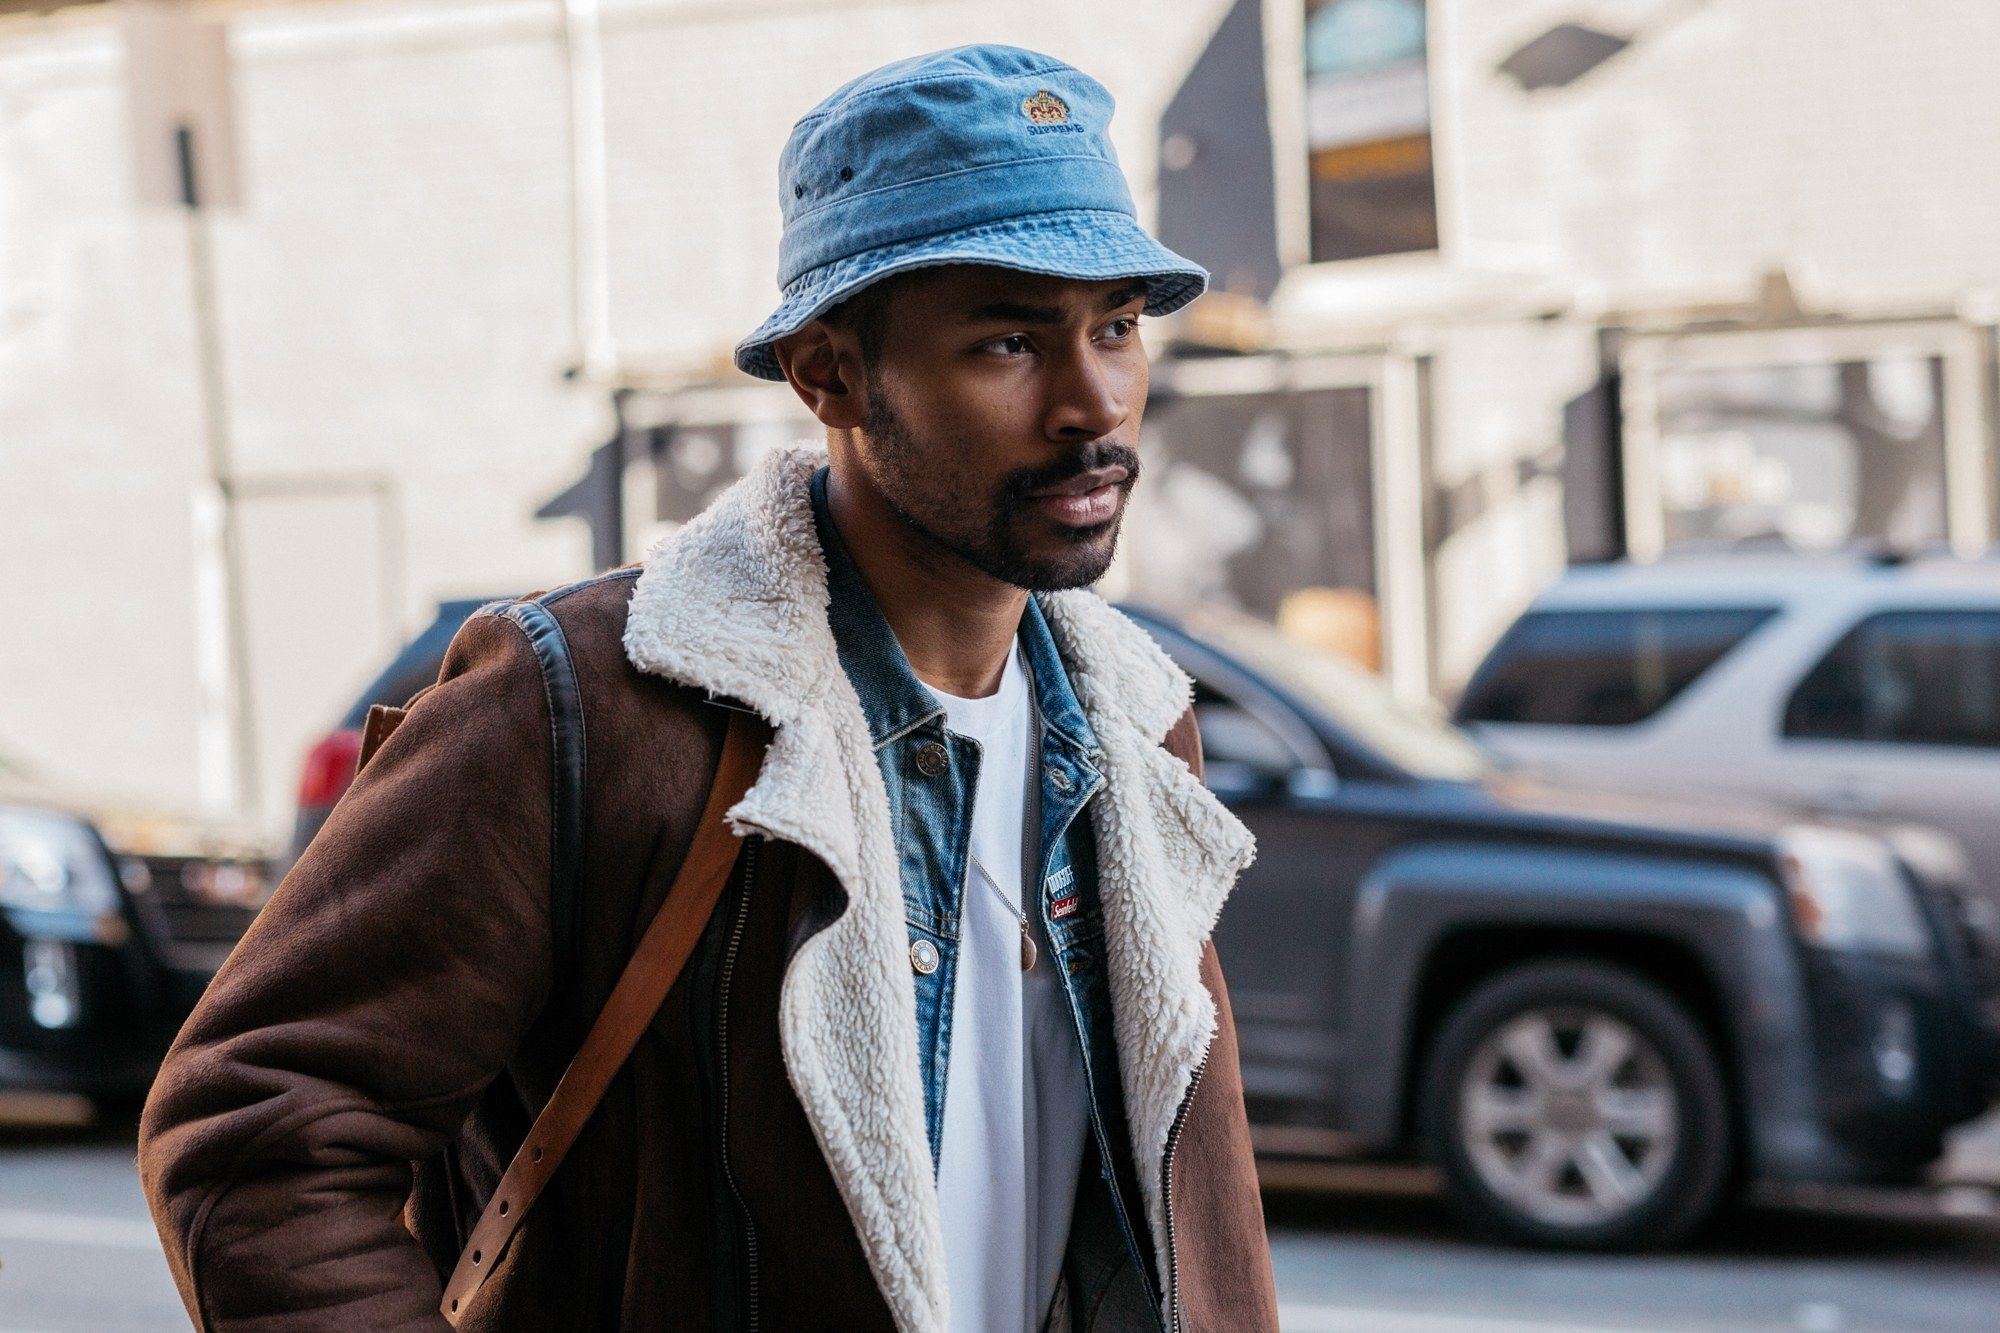 The Best Street Style From New York Fashion Week  Men s Photos  71260b4c70f0